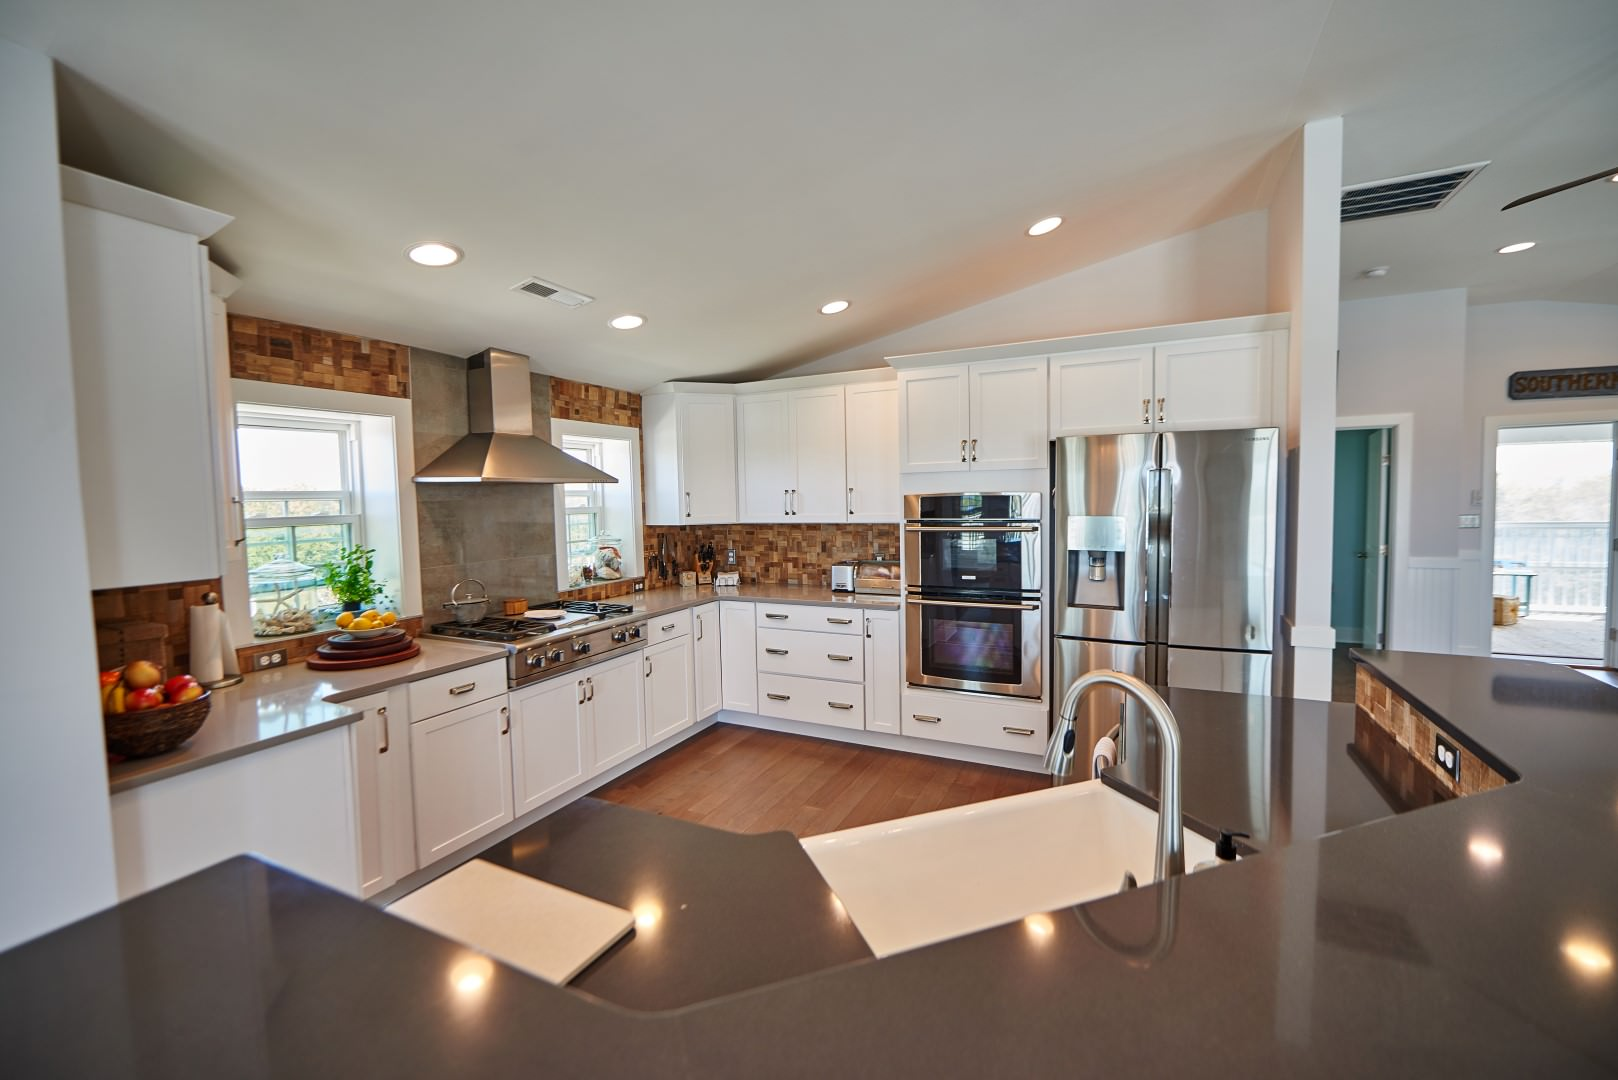 Renovation And Remodeling For Your Entire Home Lewes Delaware